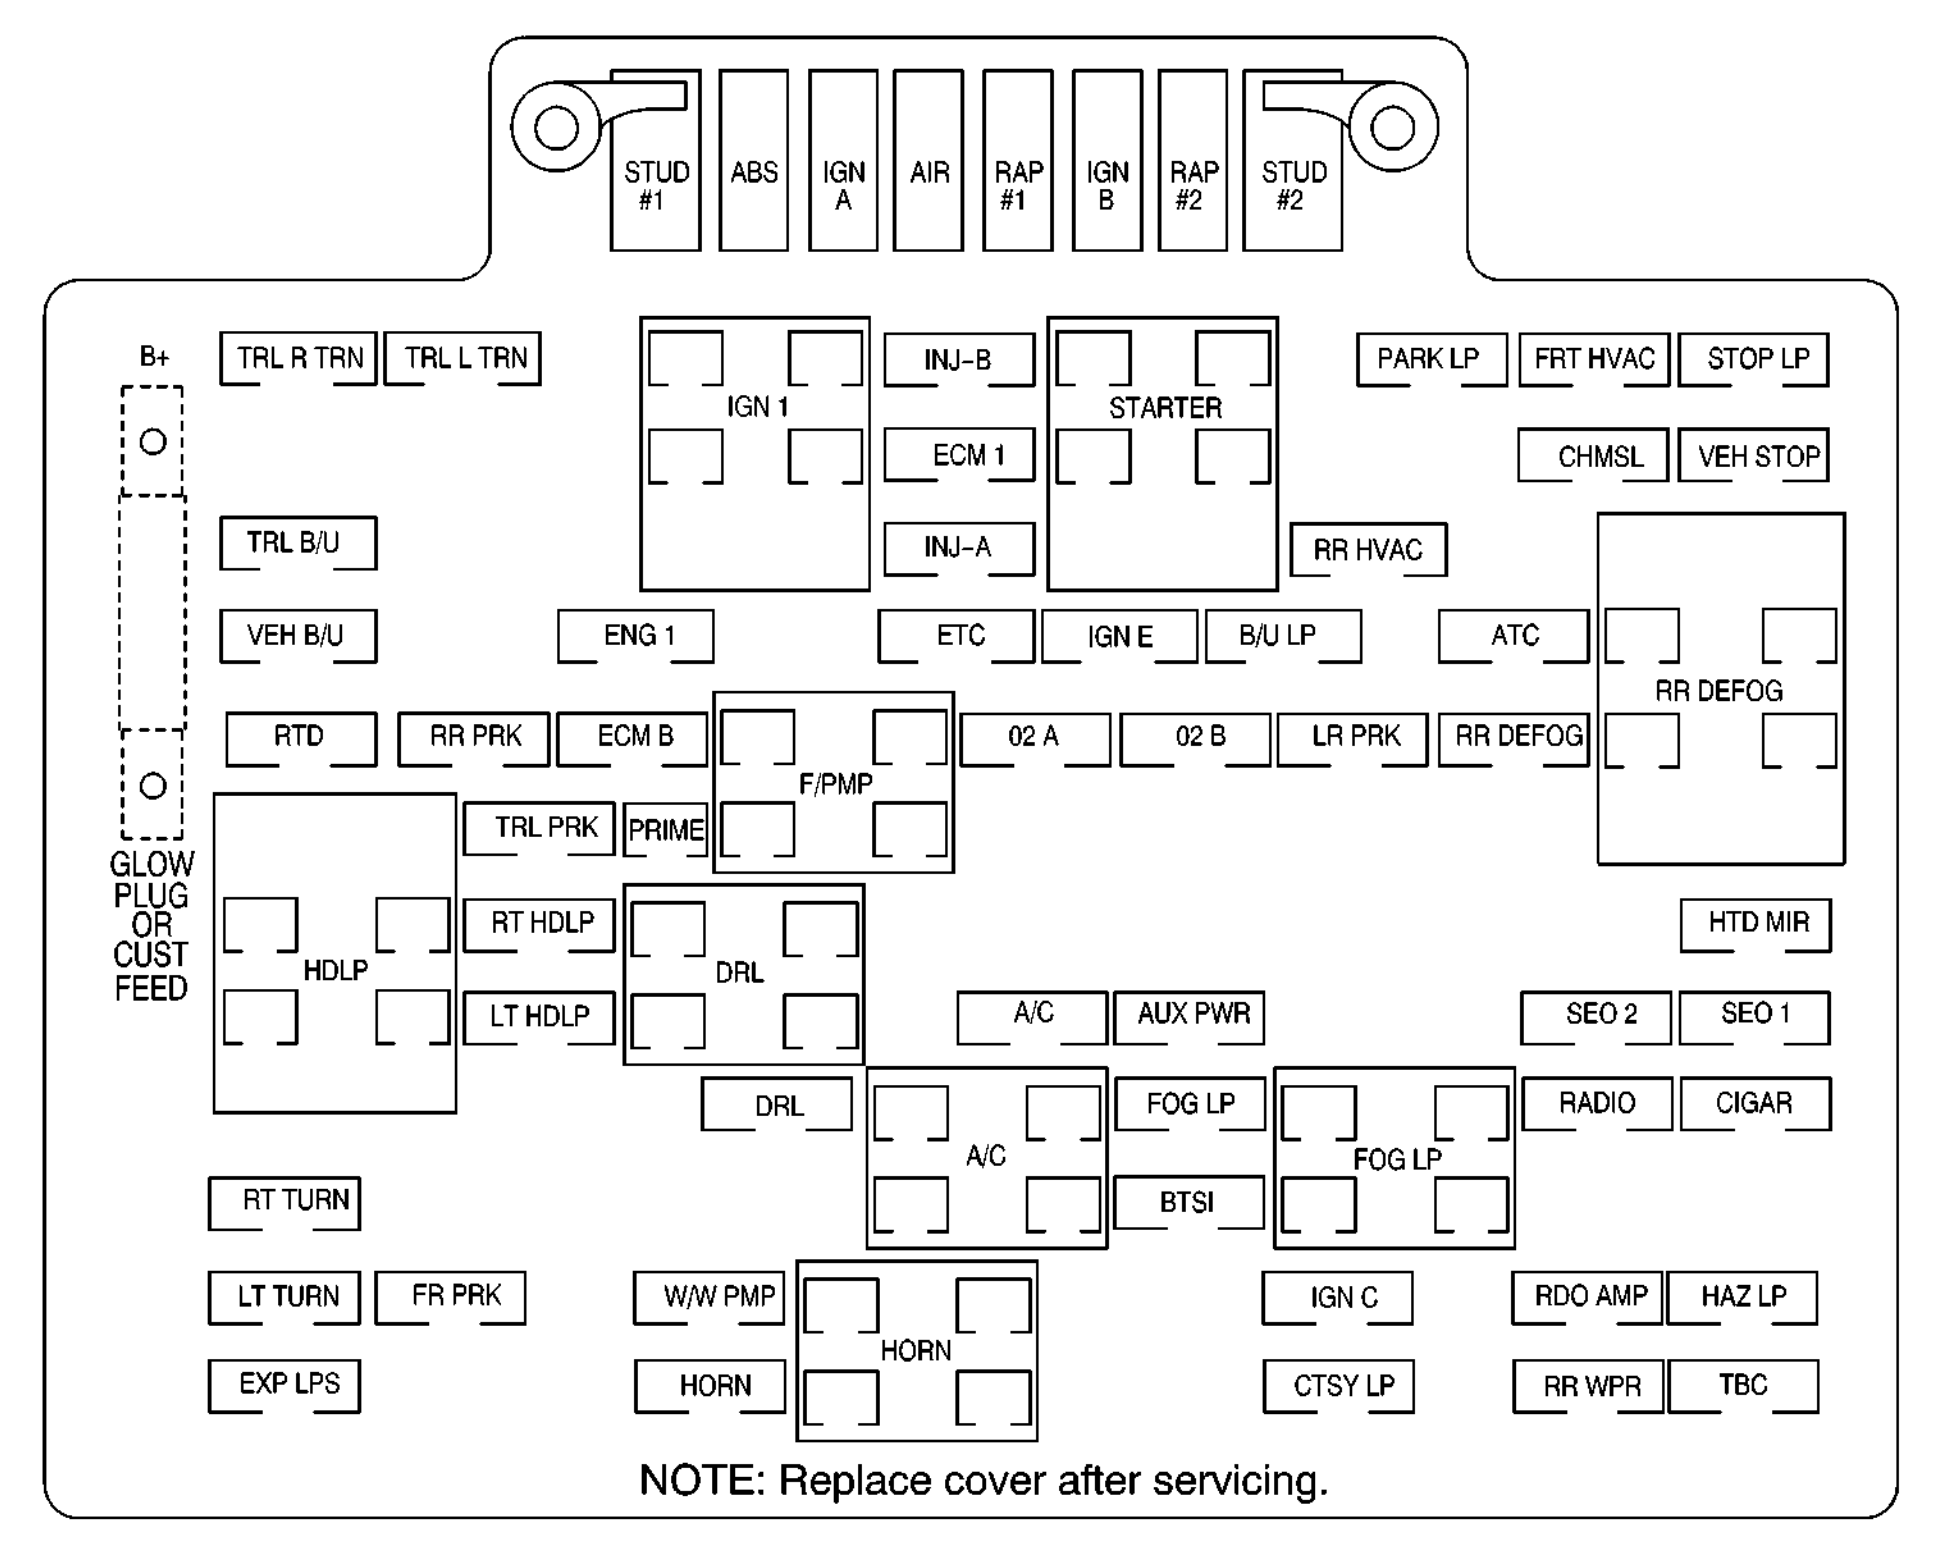 2000 Corvette Fuse Panel Diagram | Wiring Diagram